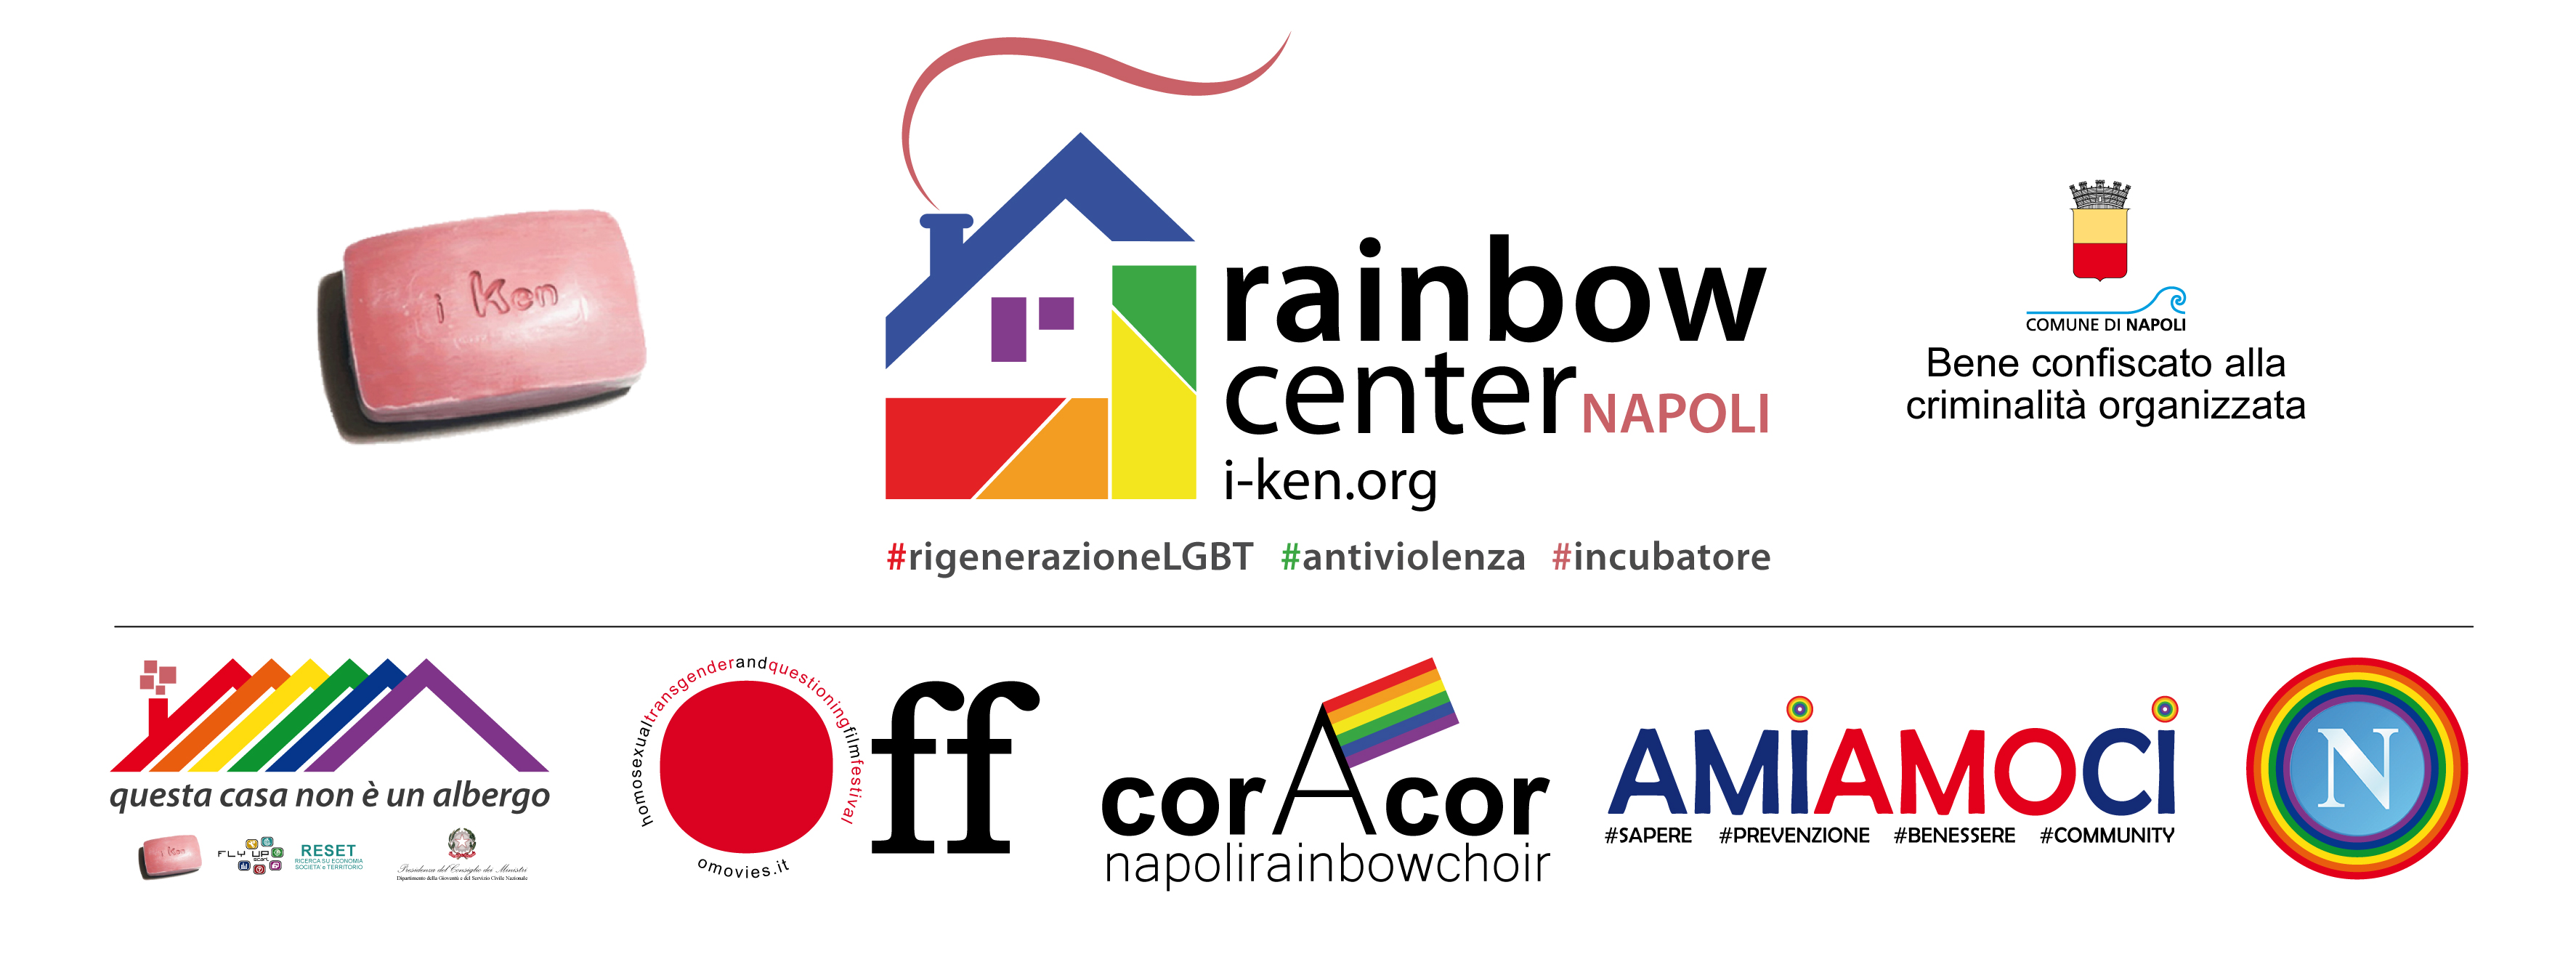 Copertina FB pagina RAINBOW CENTER-01